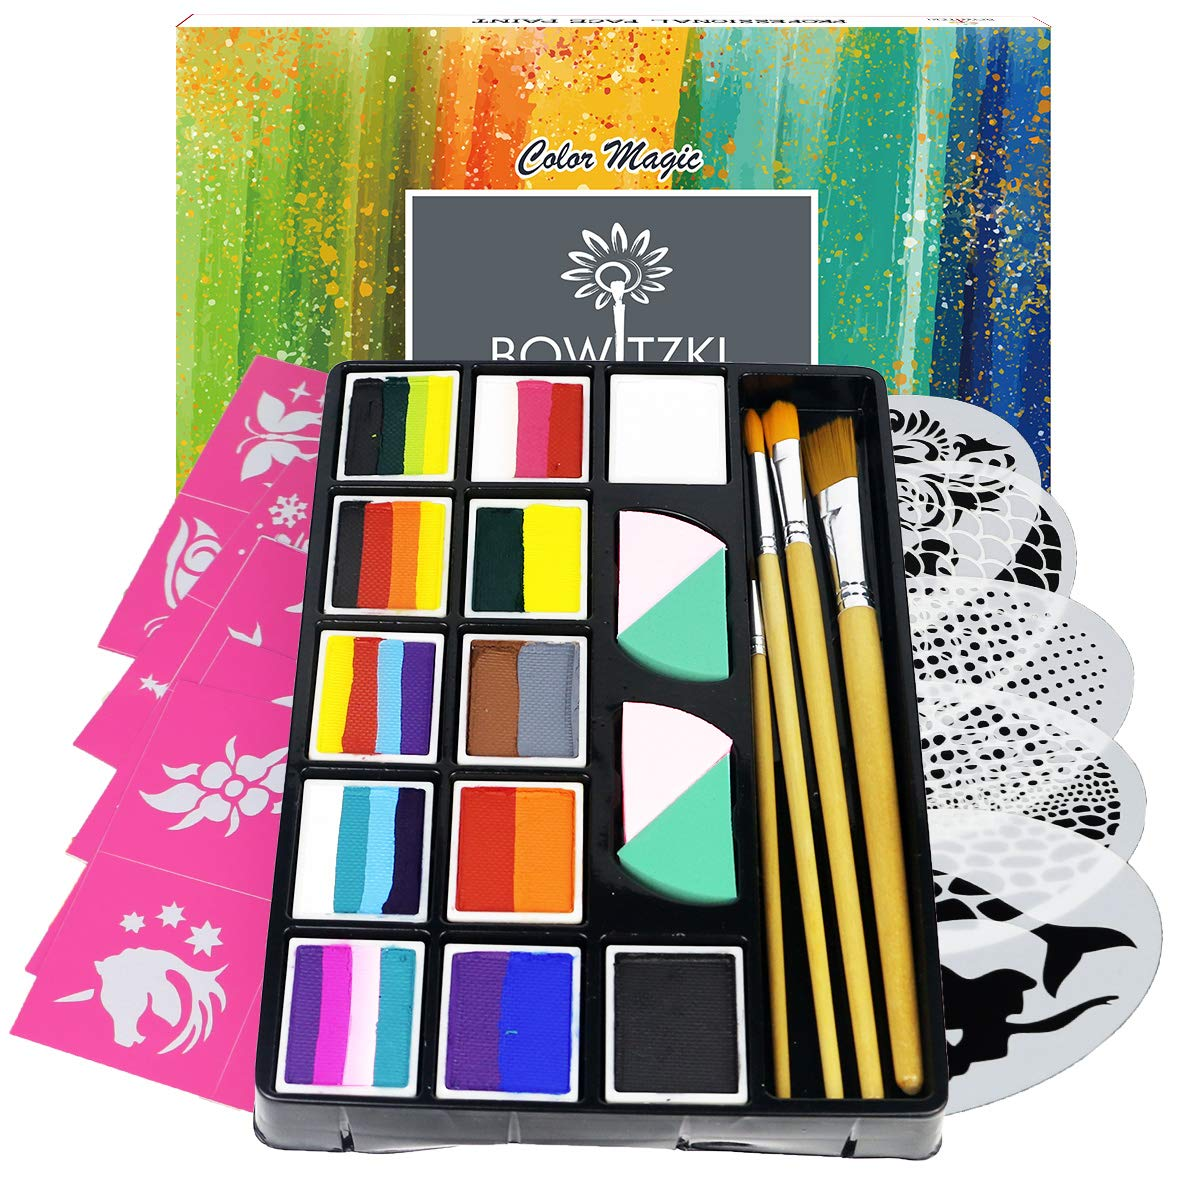 Bowitzki - Professional Face Painting Kit